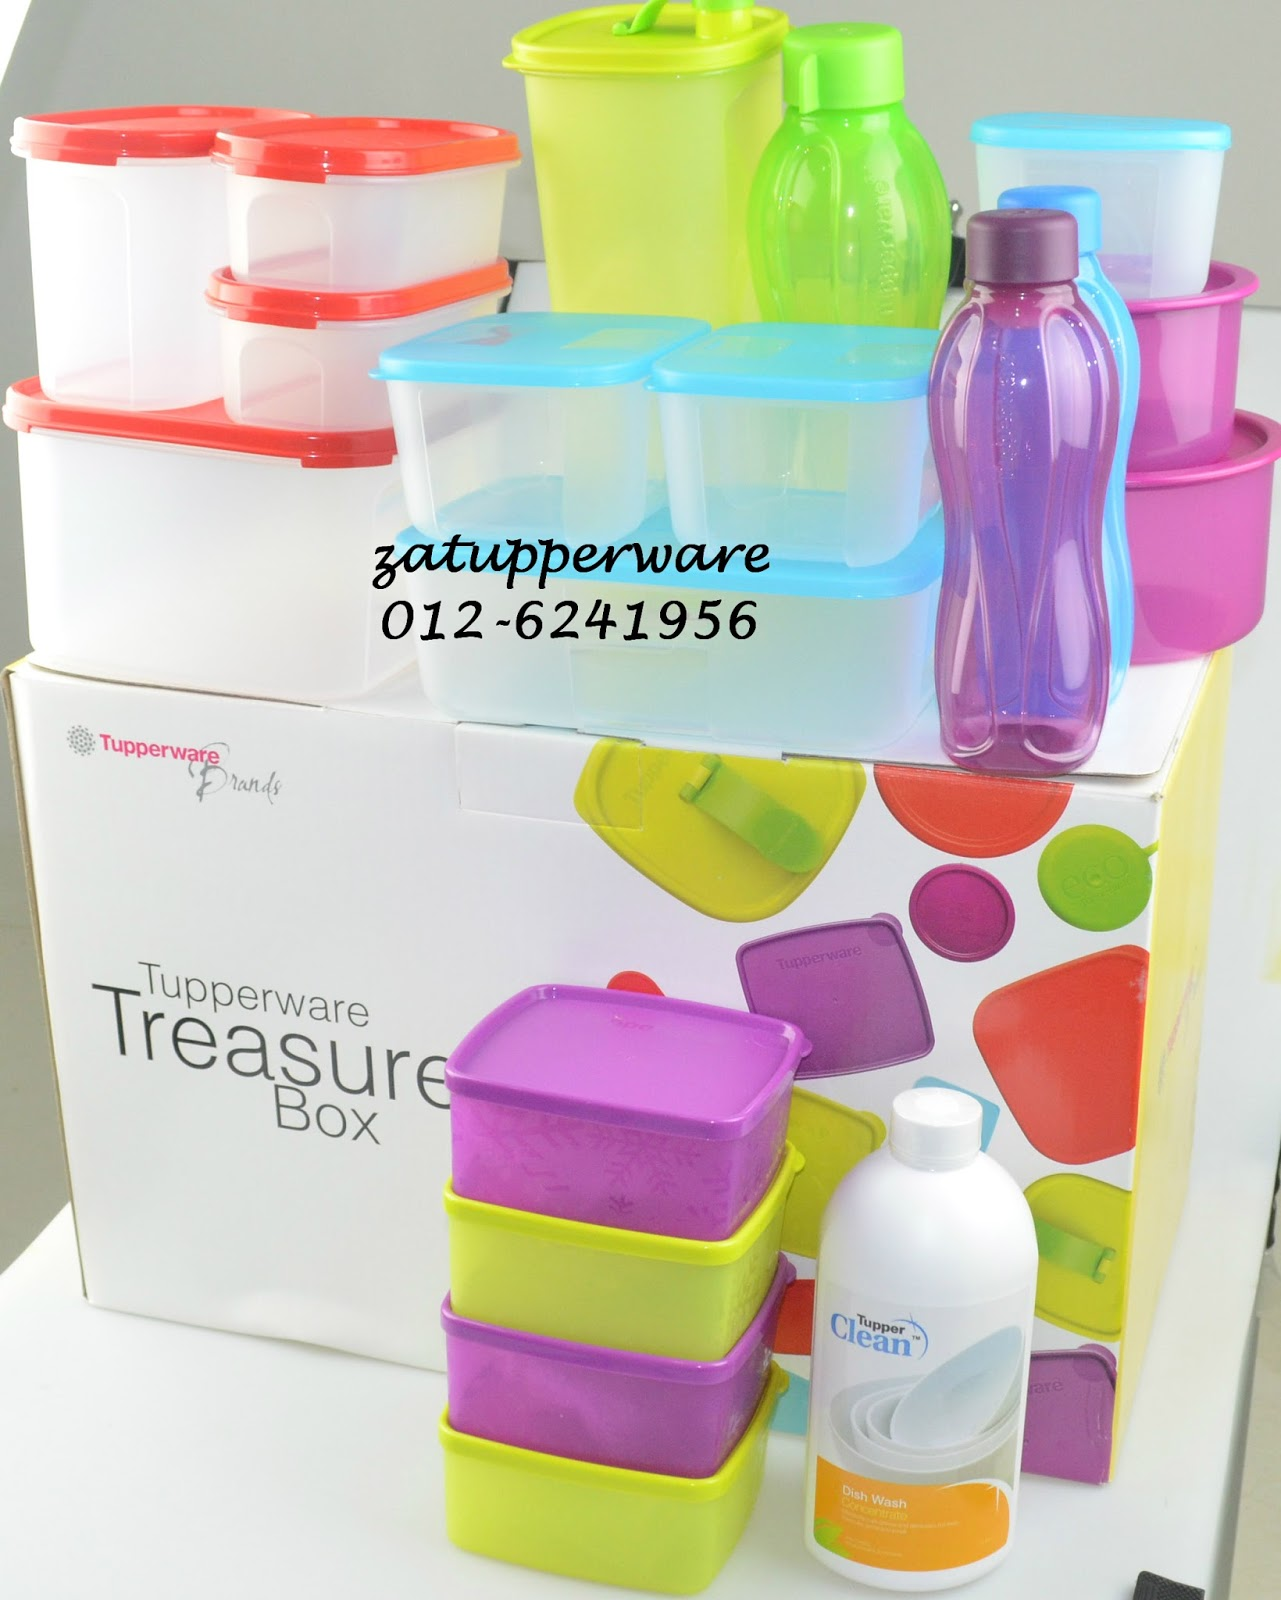 za tupperware brands malaysia promo treasure box set 1st july 12th august 2016. Black Bedroom Furniture Sets. Home Design Ideas